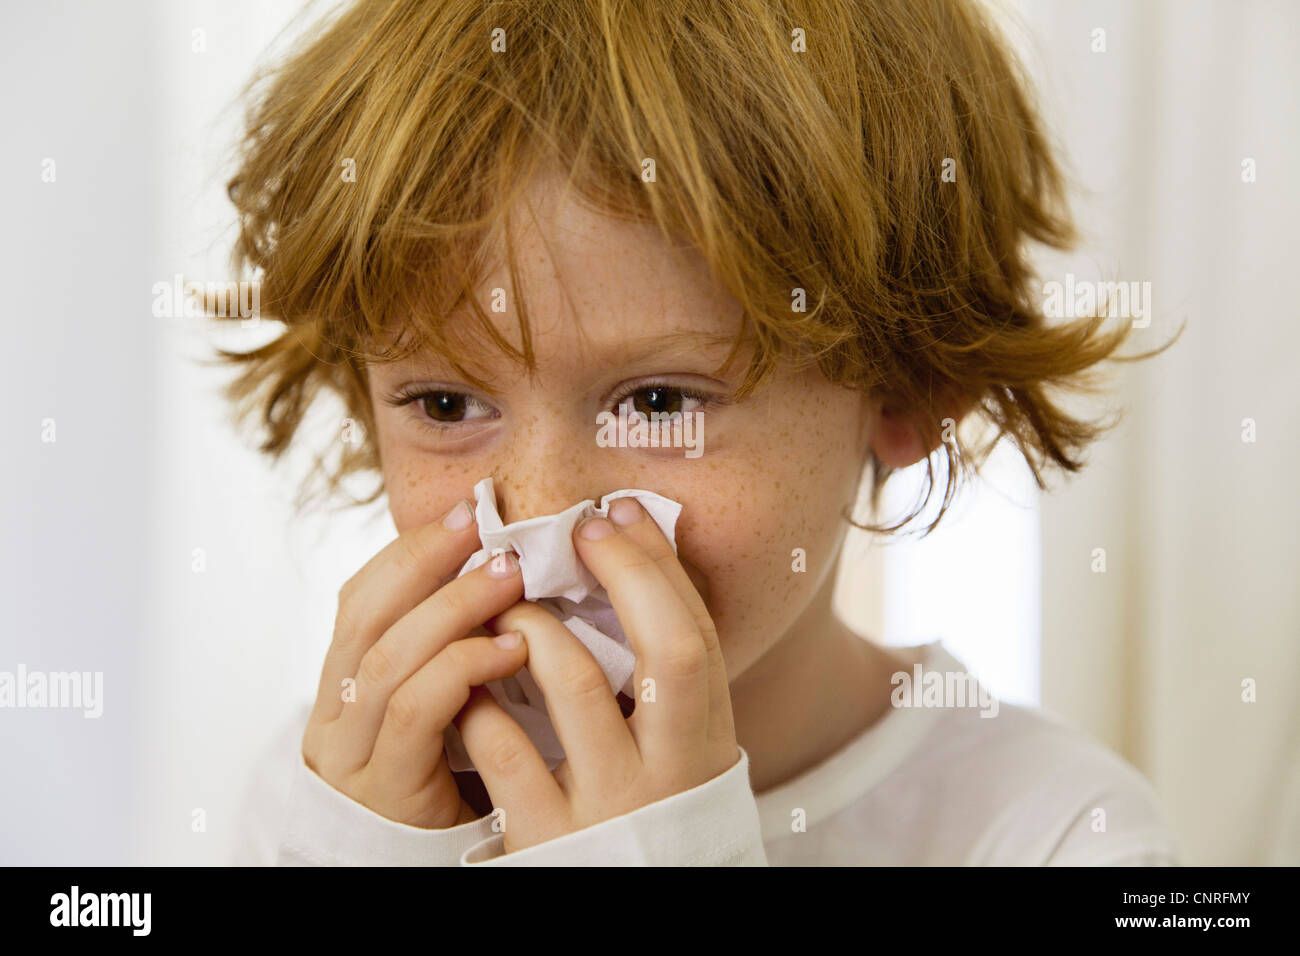 Boy blowing nose on tissue - Stock Image